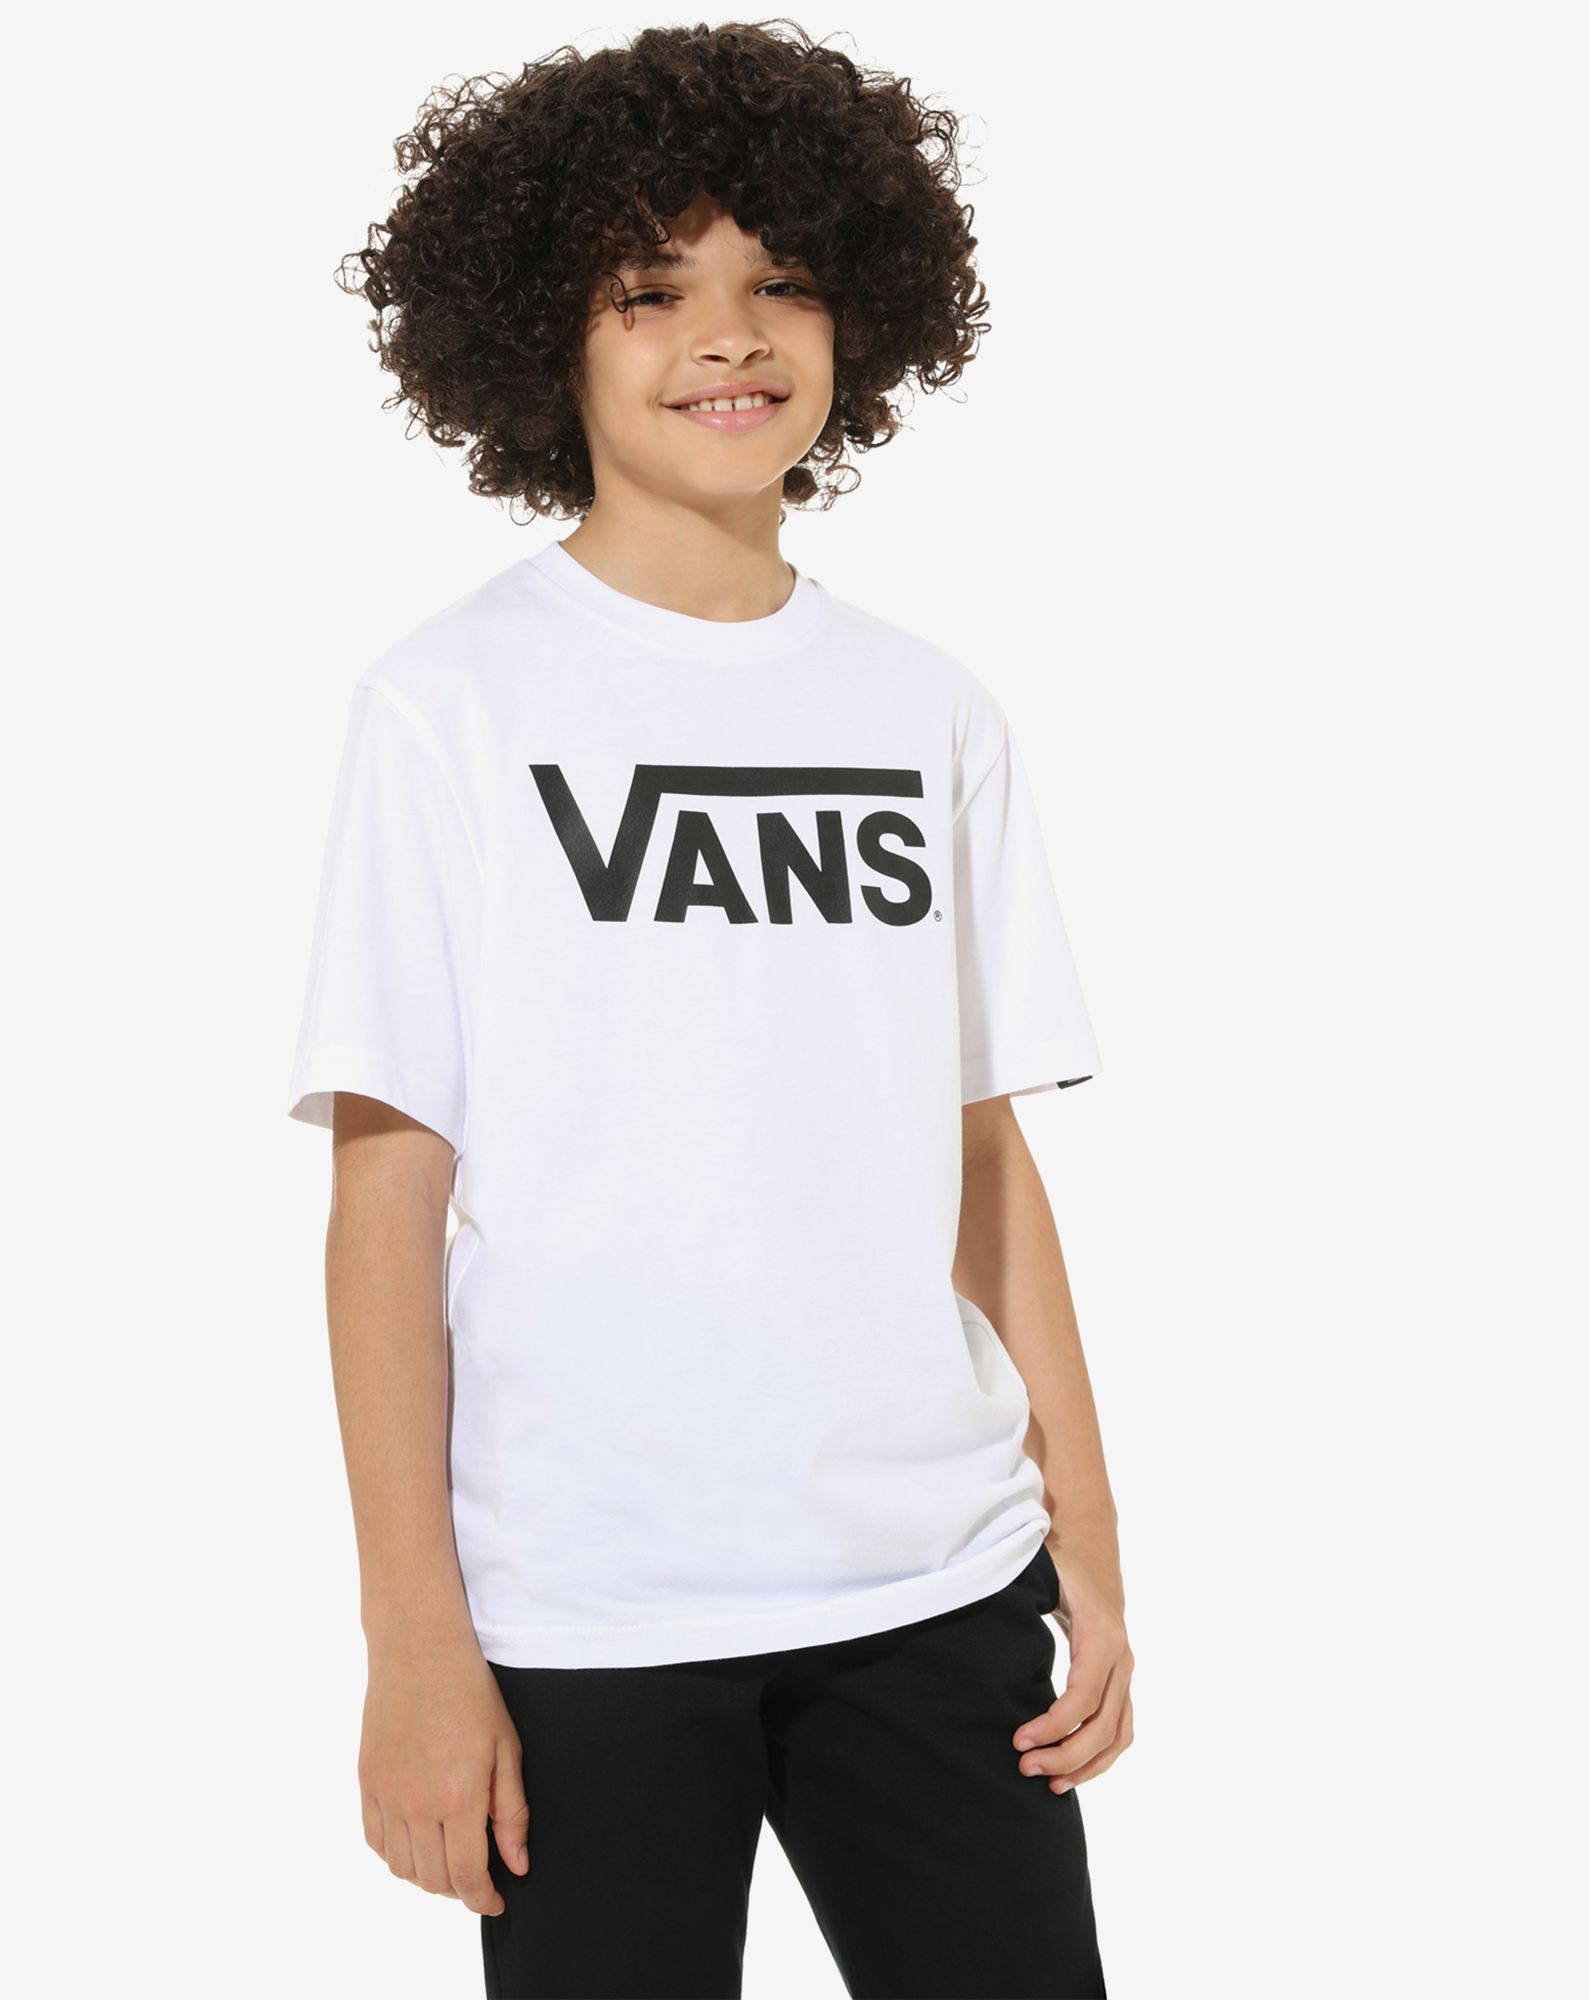 BY VANS CLASSIC BOYS White/Black